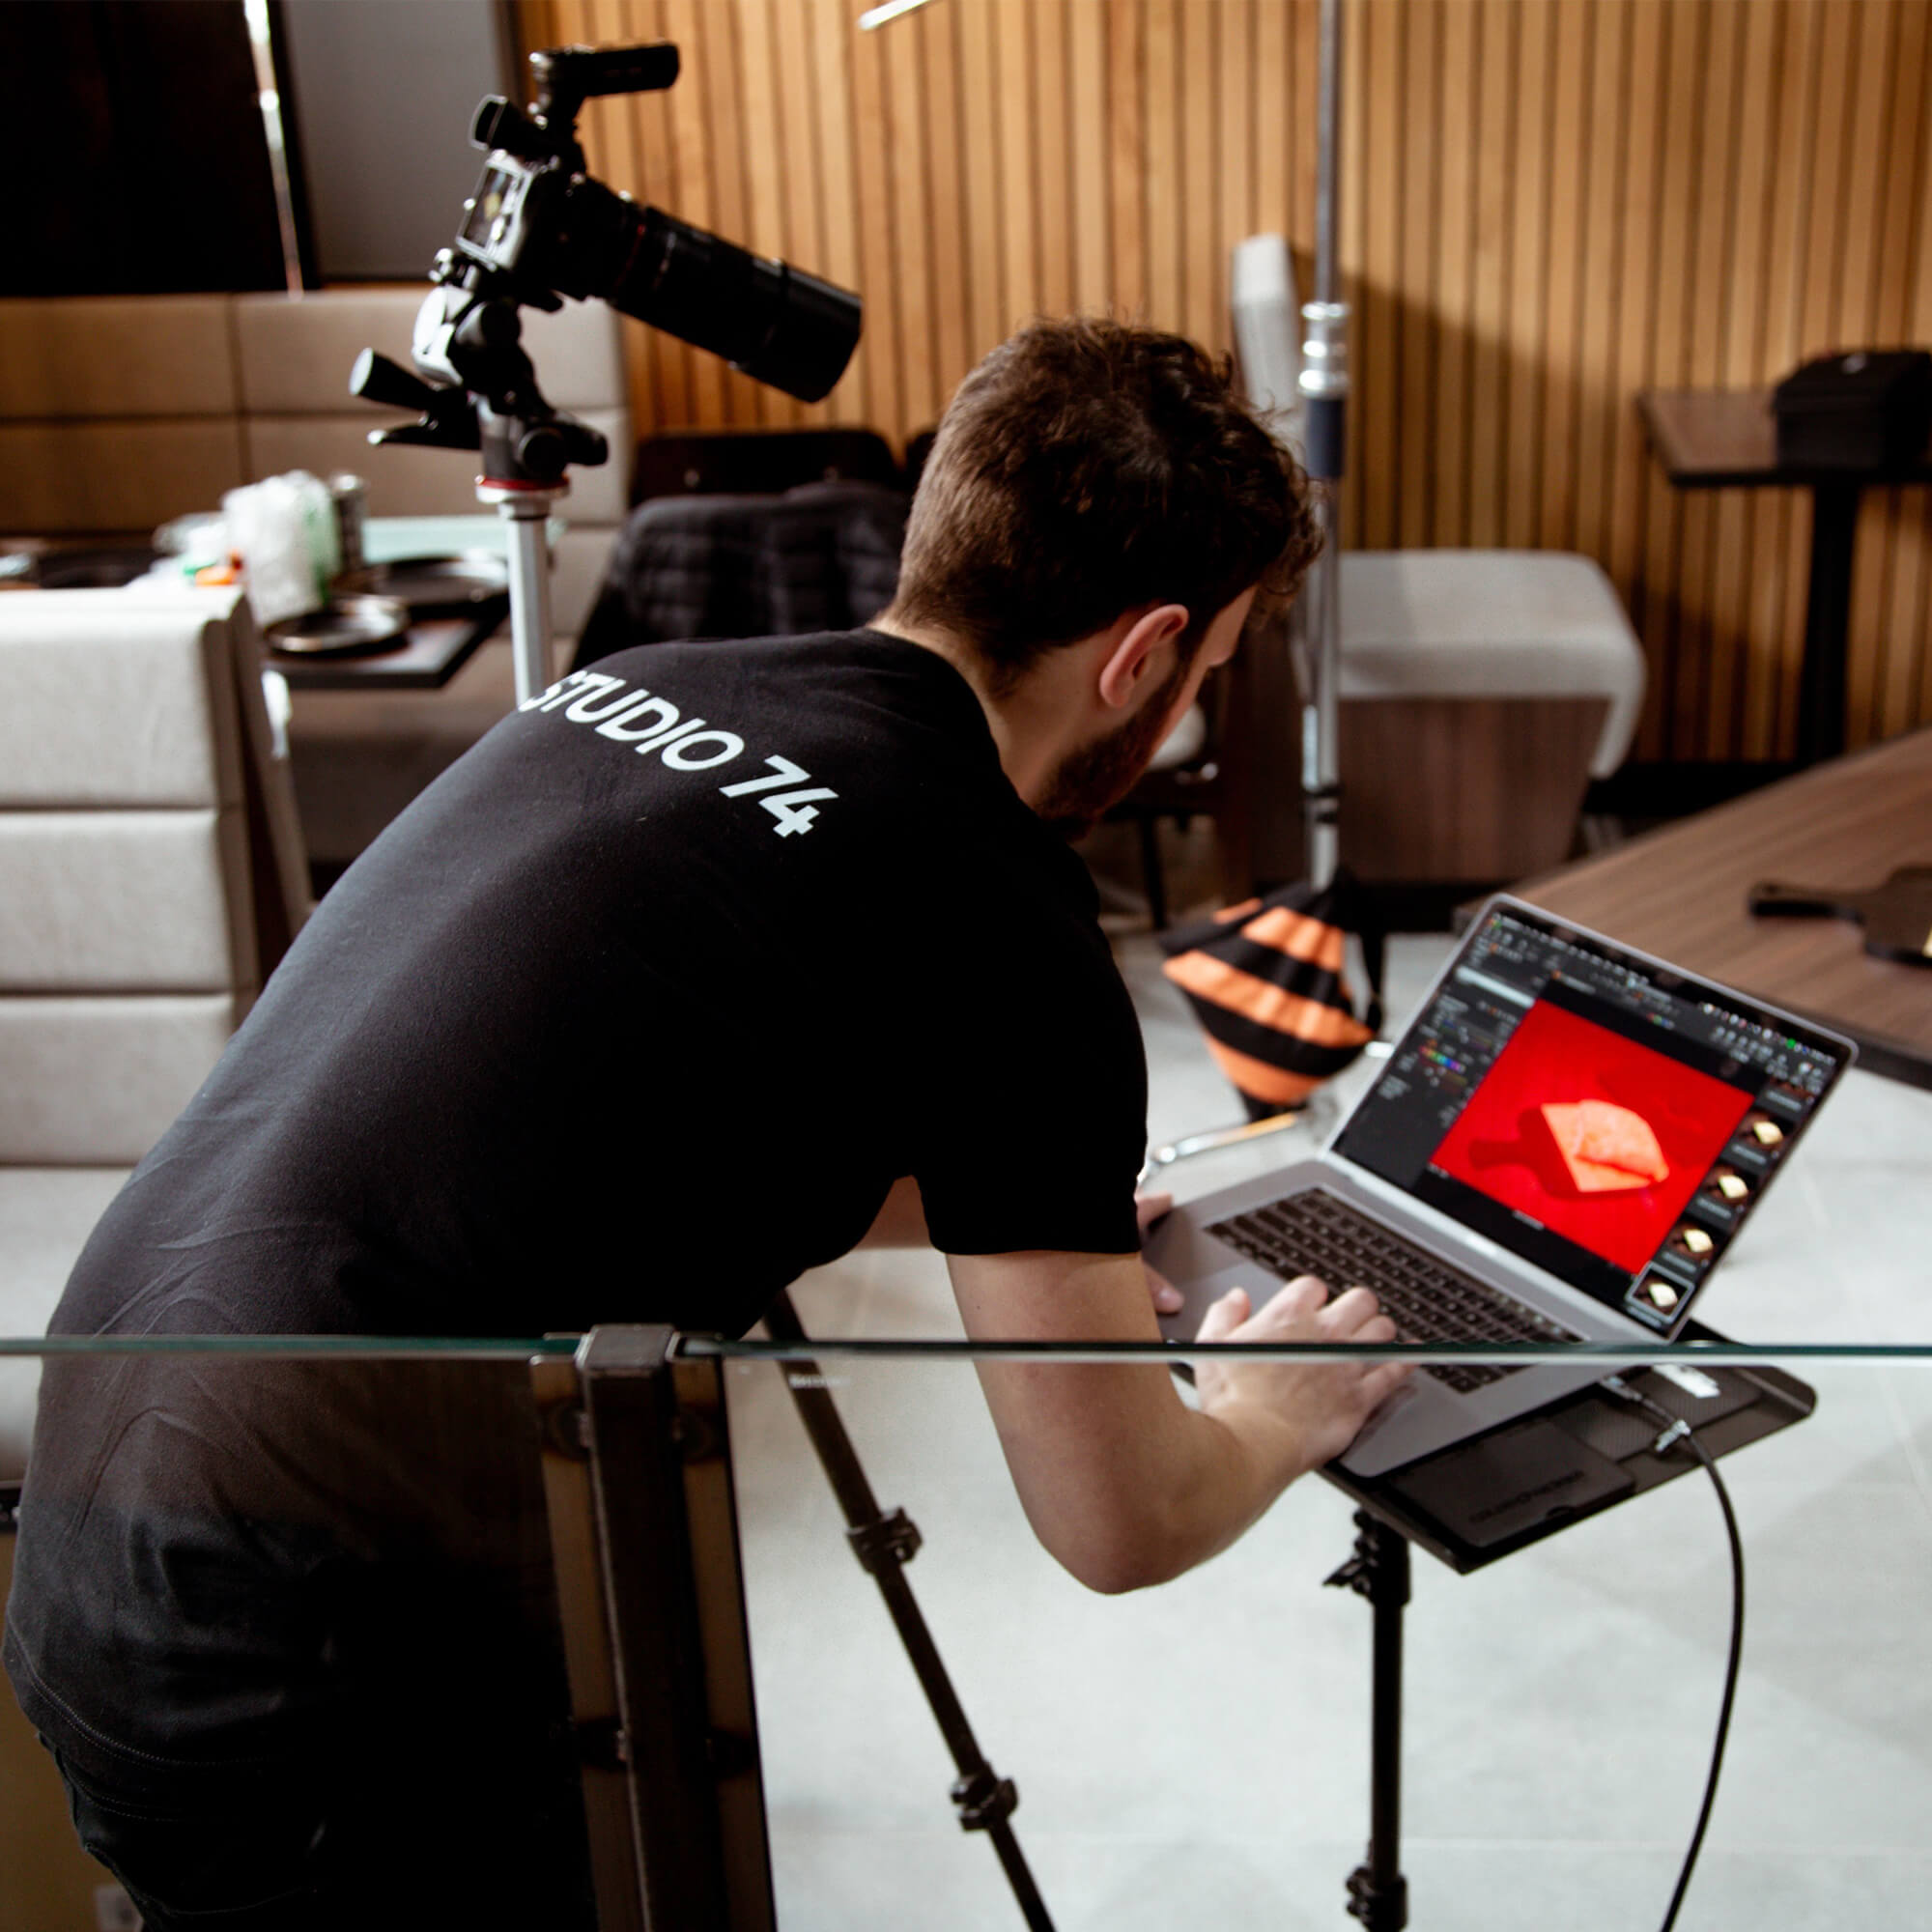 Dariusz working on a laptop in a photography studio.